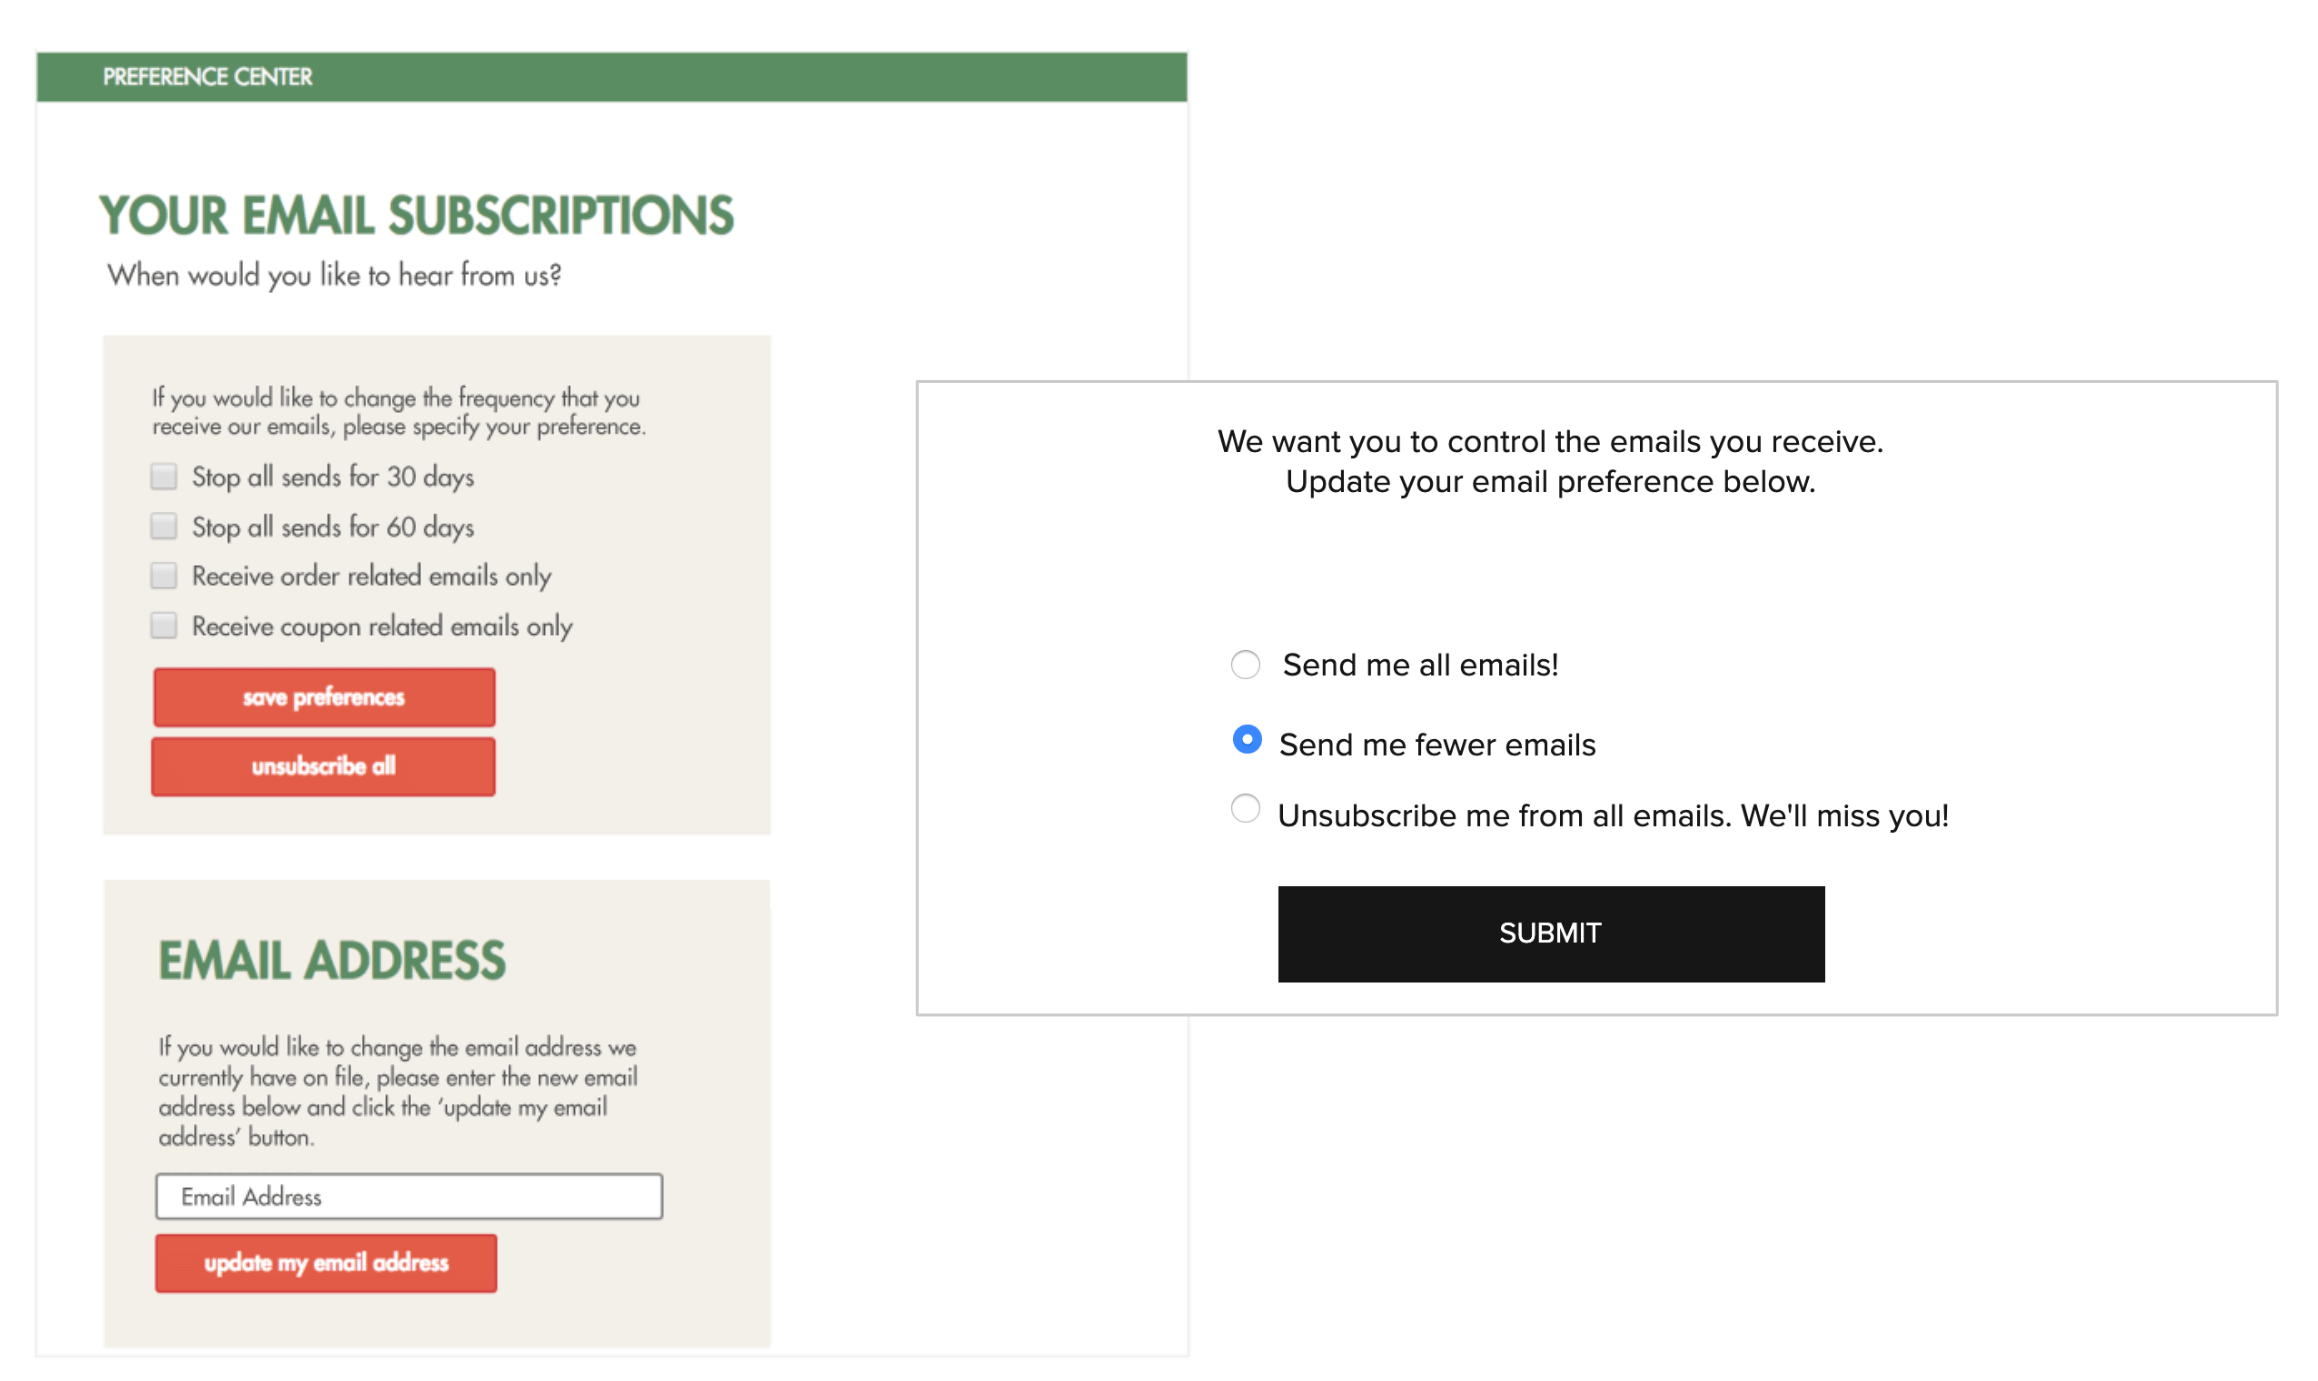 Email preference center pause subscription